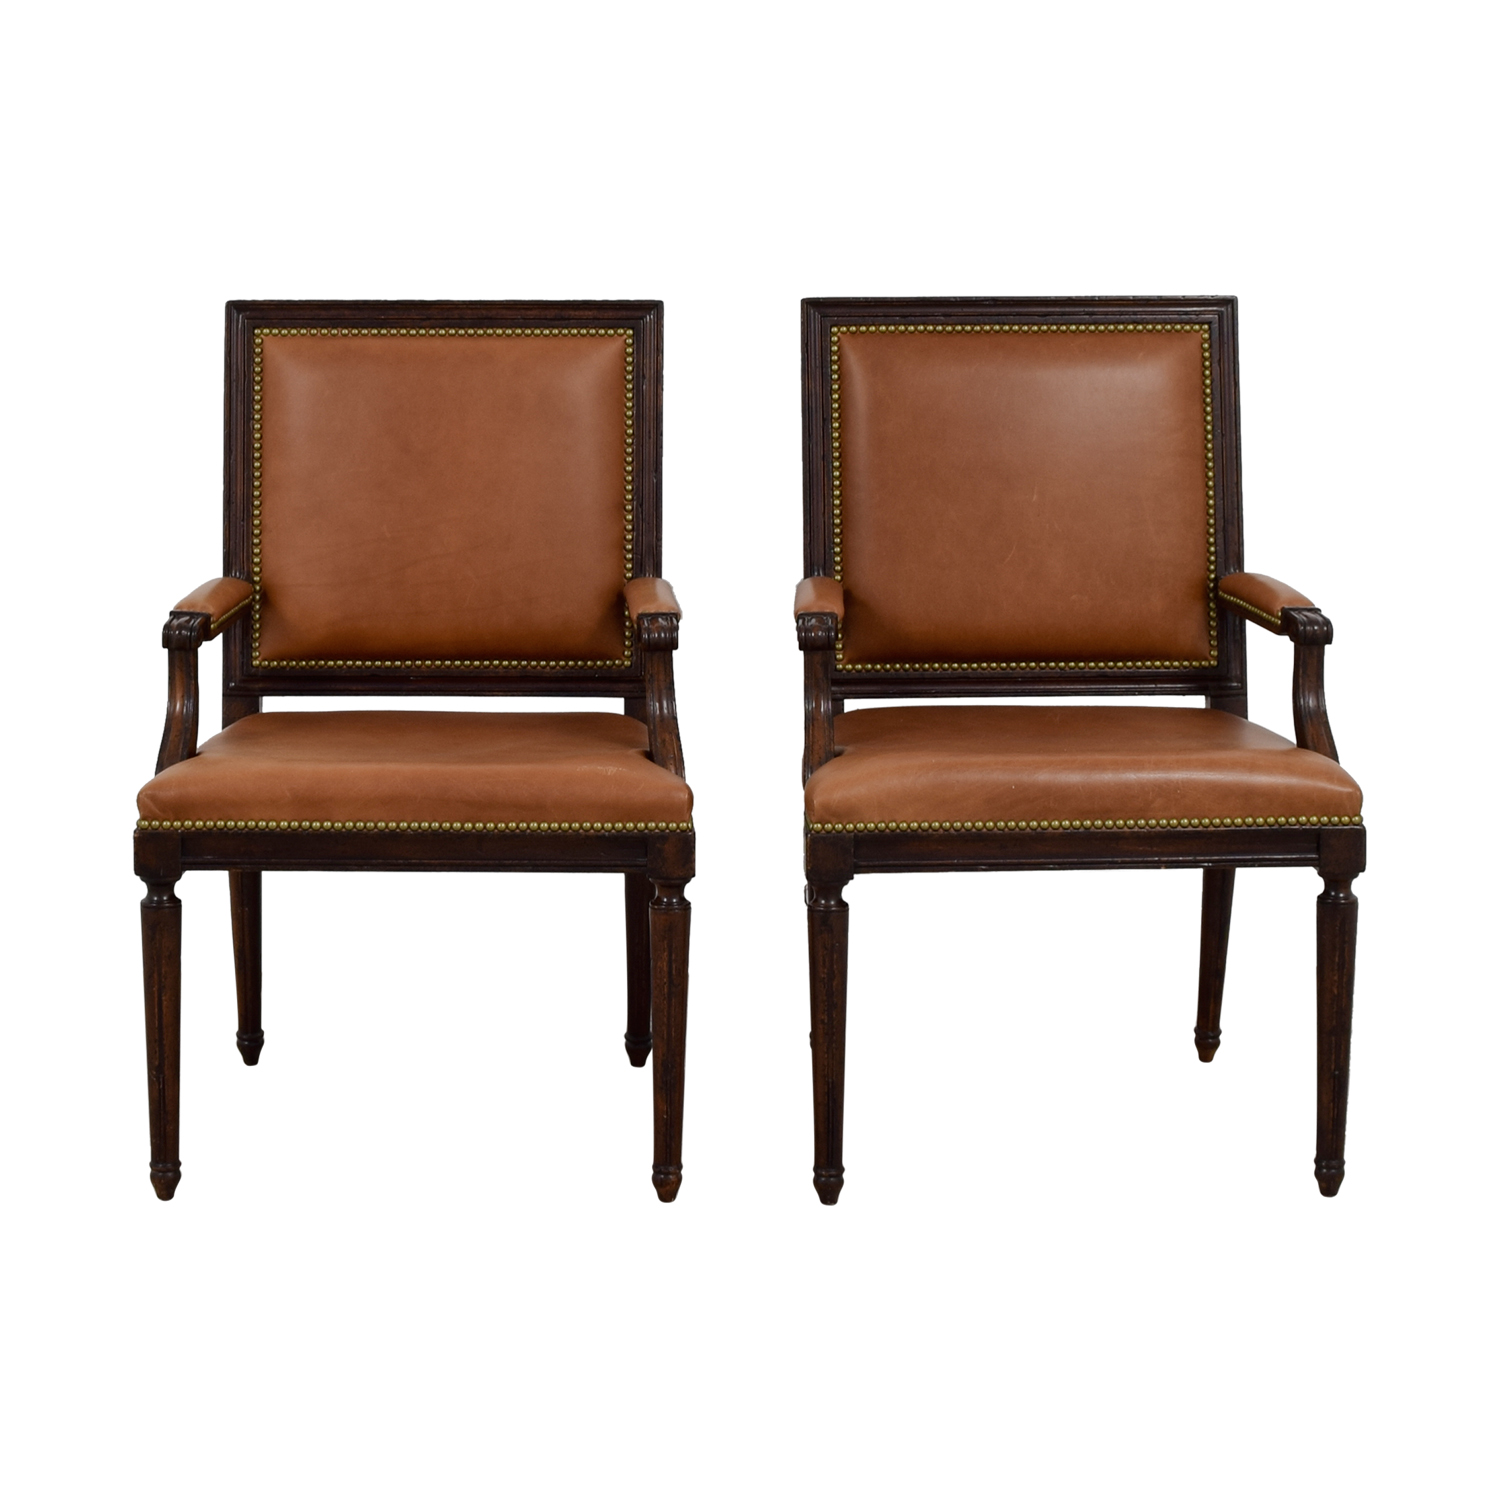 Henredon Henredon Brown Leather Nailhead Accent Chairs coupon